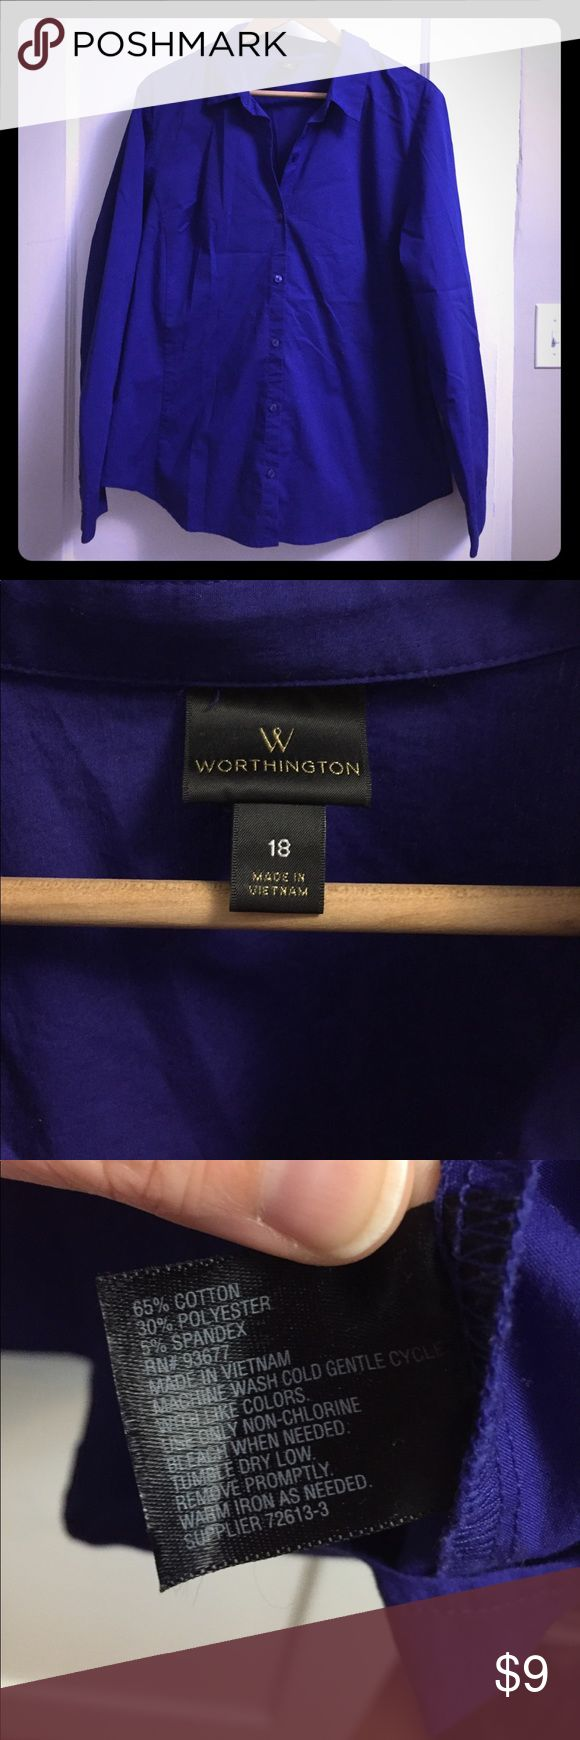 Royal blue/purple women's dress shirt Comfortable semi fitted button down women's dress shirt. Shirt has a nice stretch to it making it very comfortable! Worn only once! Worthington Tops Button Down Shirts